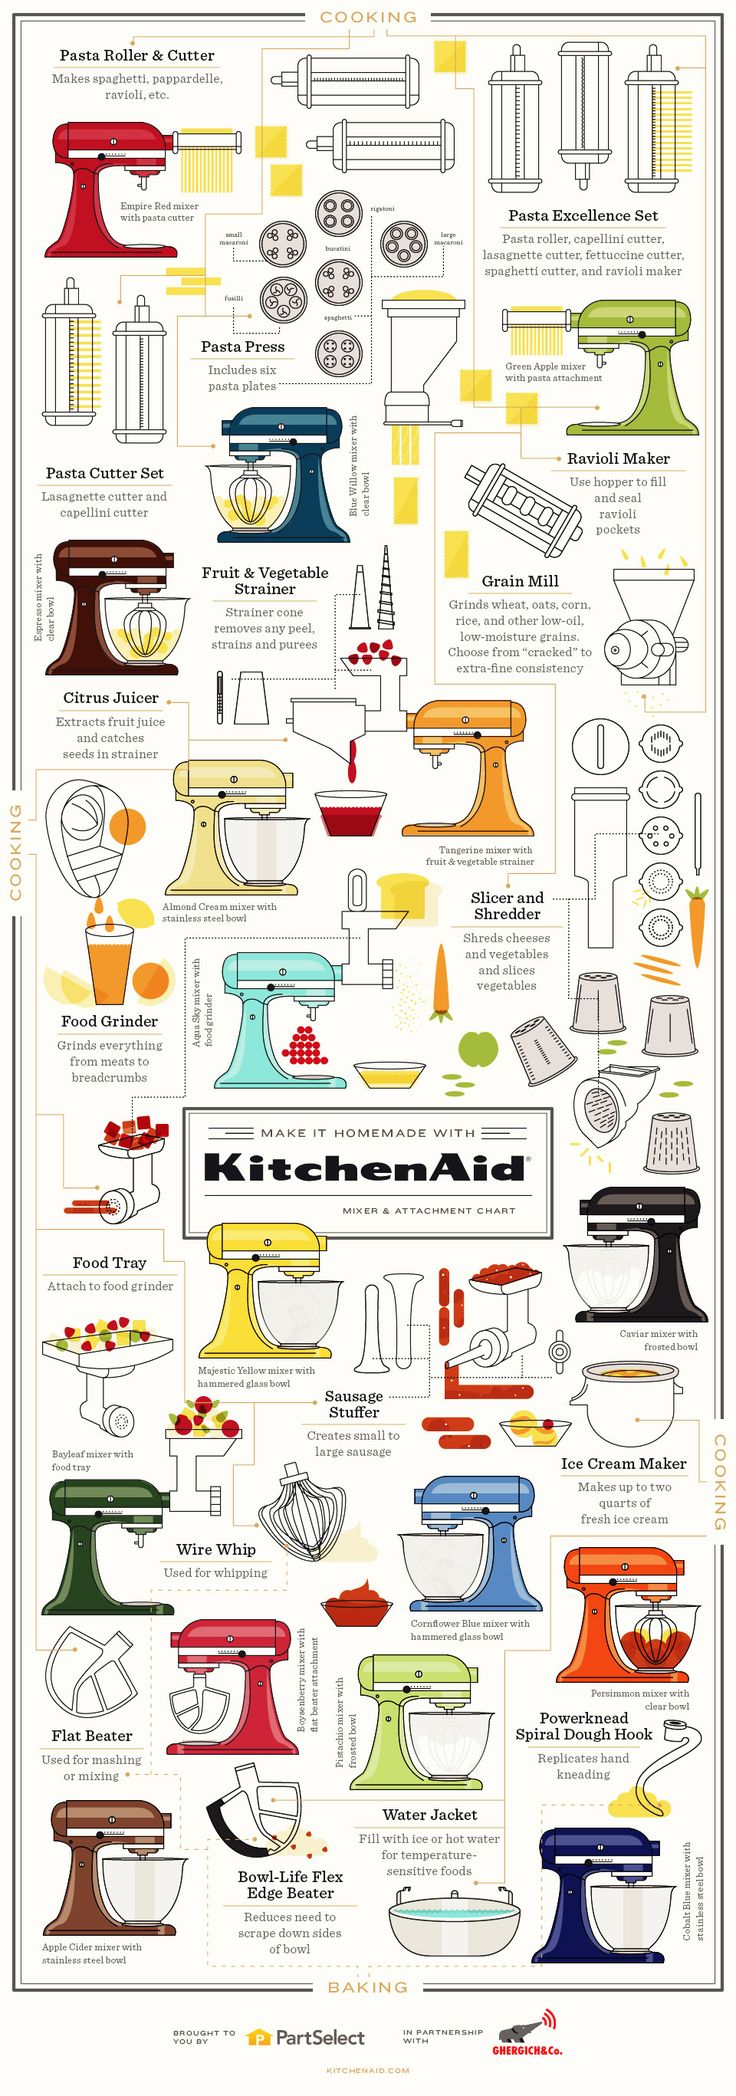 Do You Know Everything Your KitchenAid Mixer Can Do?